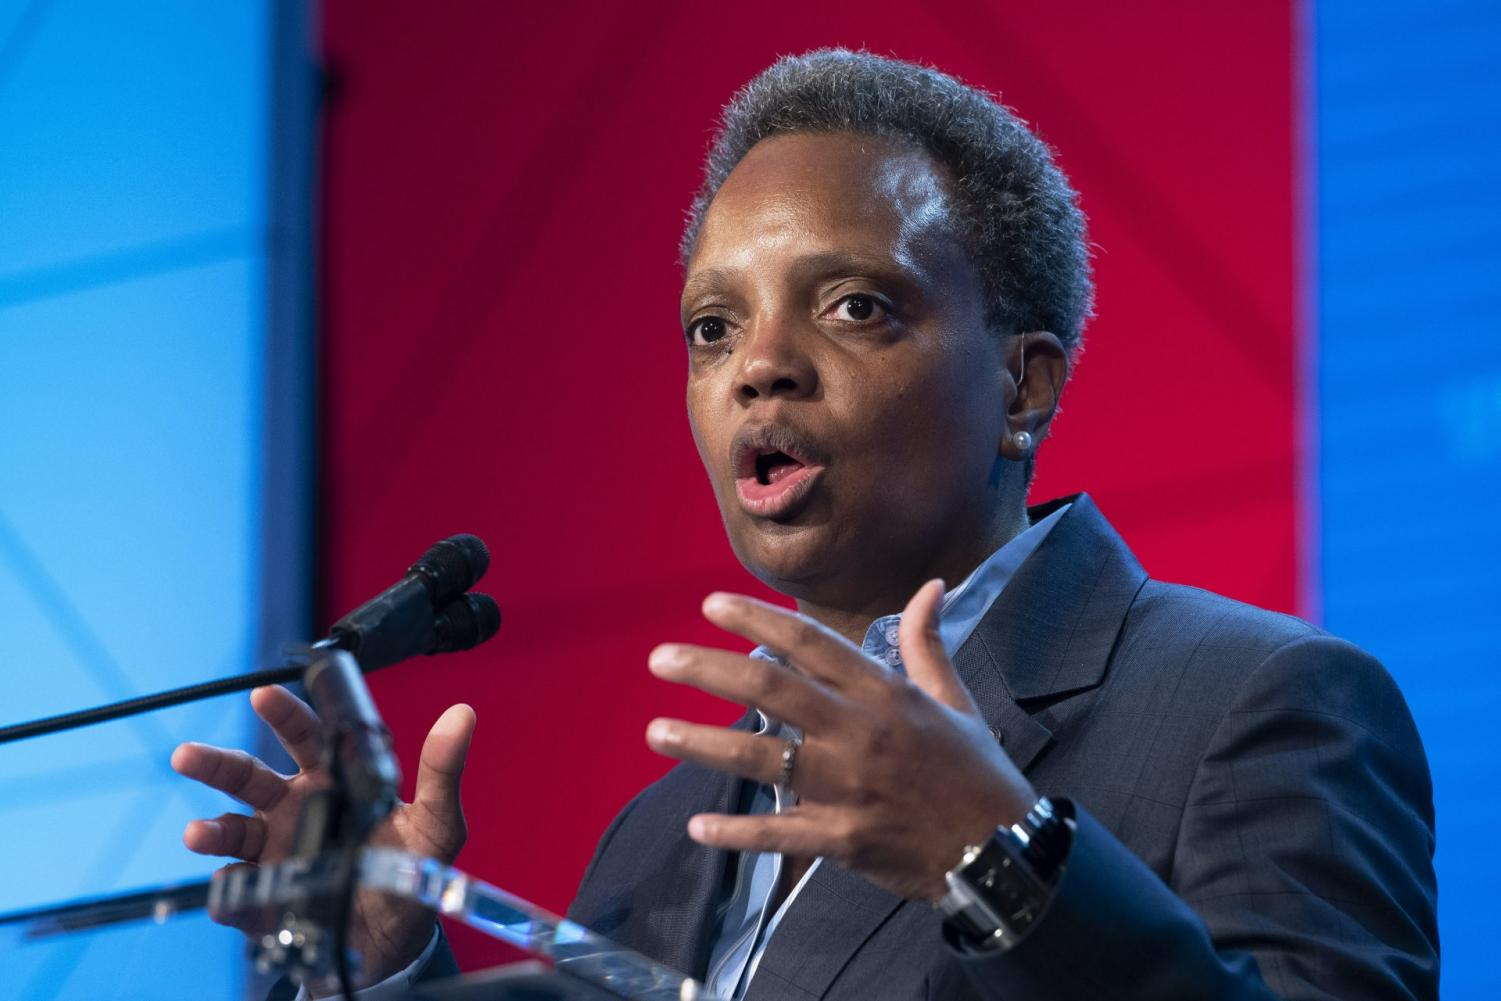 In this Jan. 23, 2020, file photo, Chicago Mayor Lori Lightfoot, speaks at the U.S. Conference of Mayors' Winter Meeting in Washington. Underprivileged areas in Chicago will receive an estimated $20 million investment for revitalization efforts that prioritize affordable housing and economic development, Lightfoot and Illinois Gov. J.B. Pritzker announced Monday, Jan. 27.